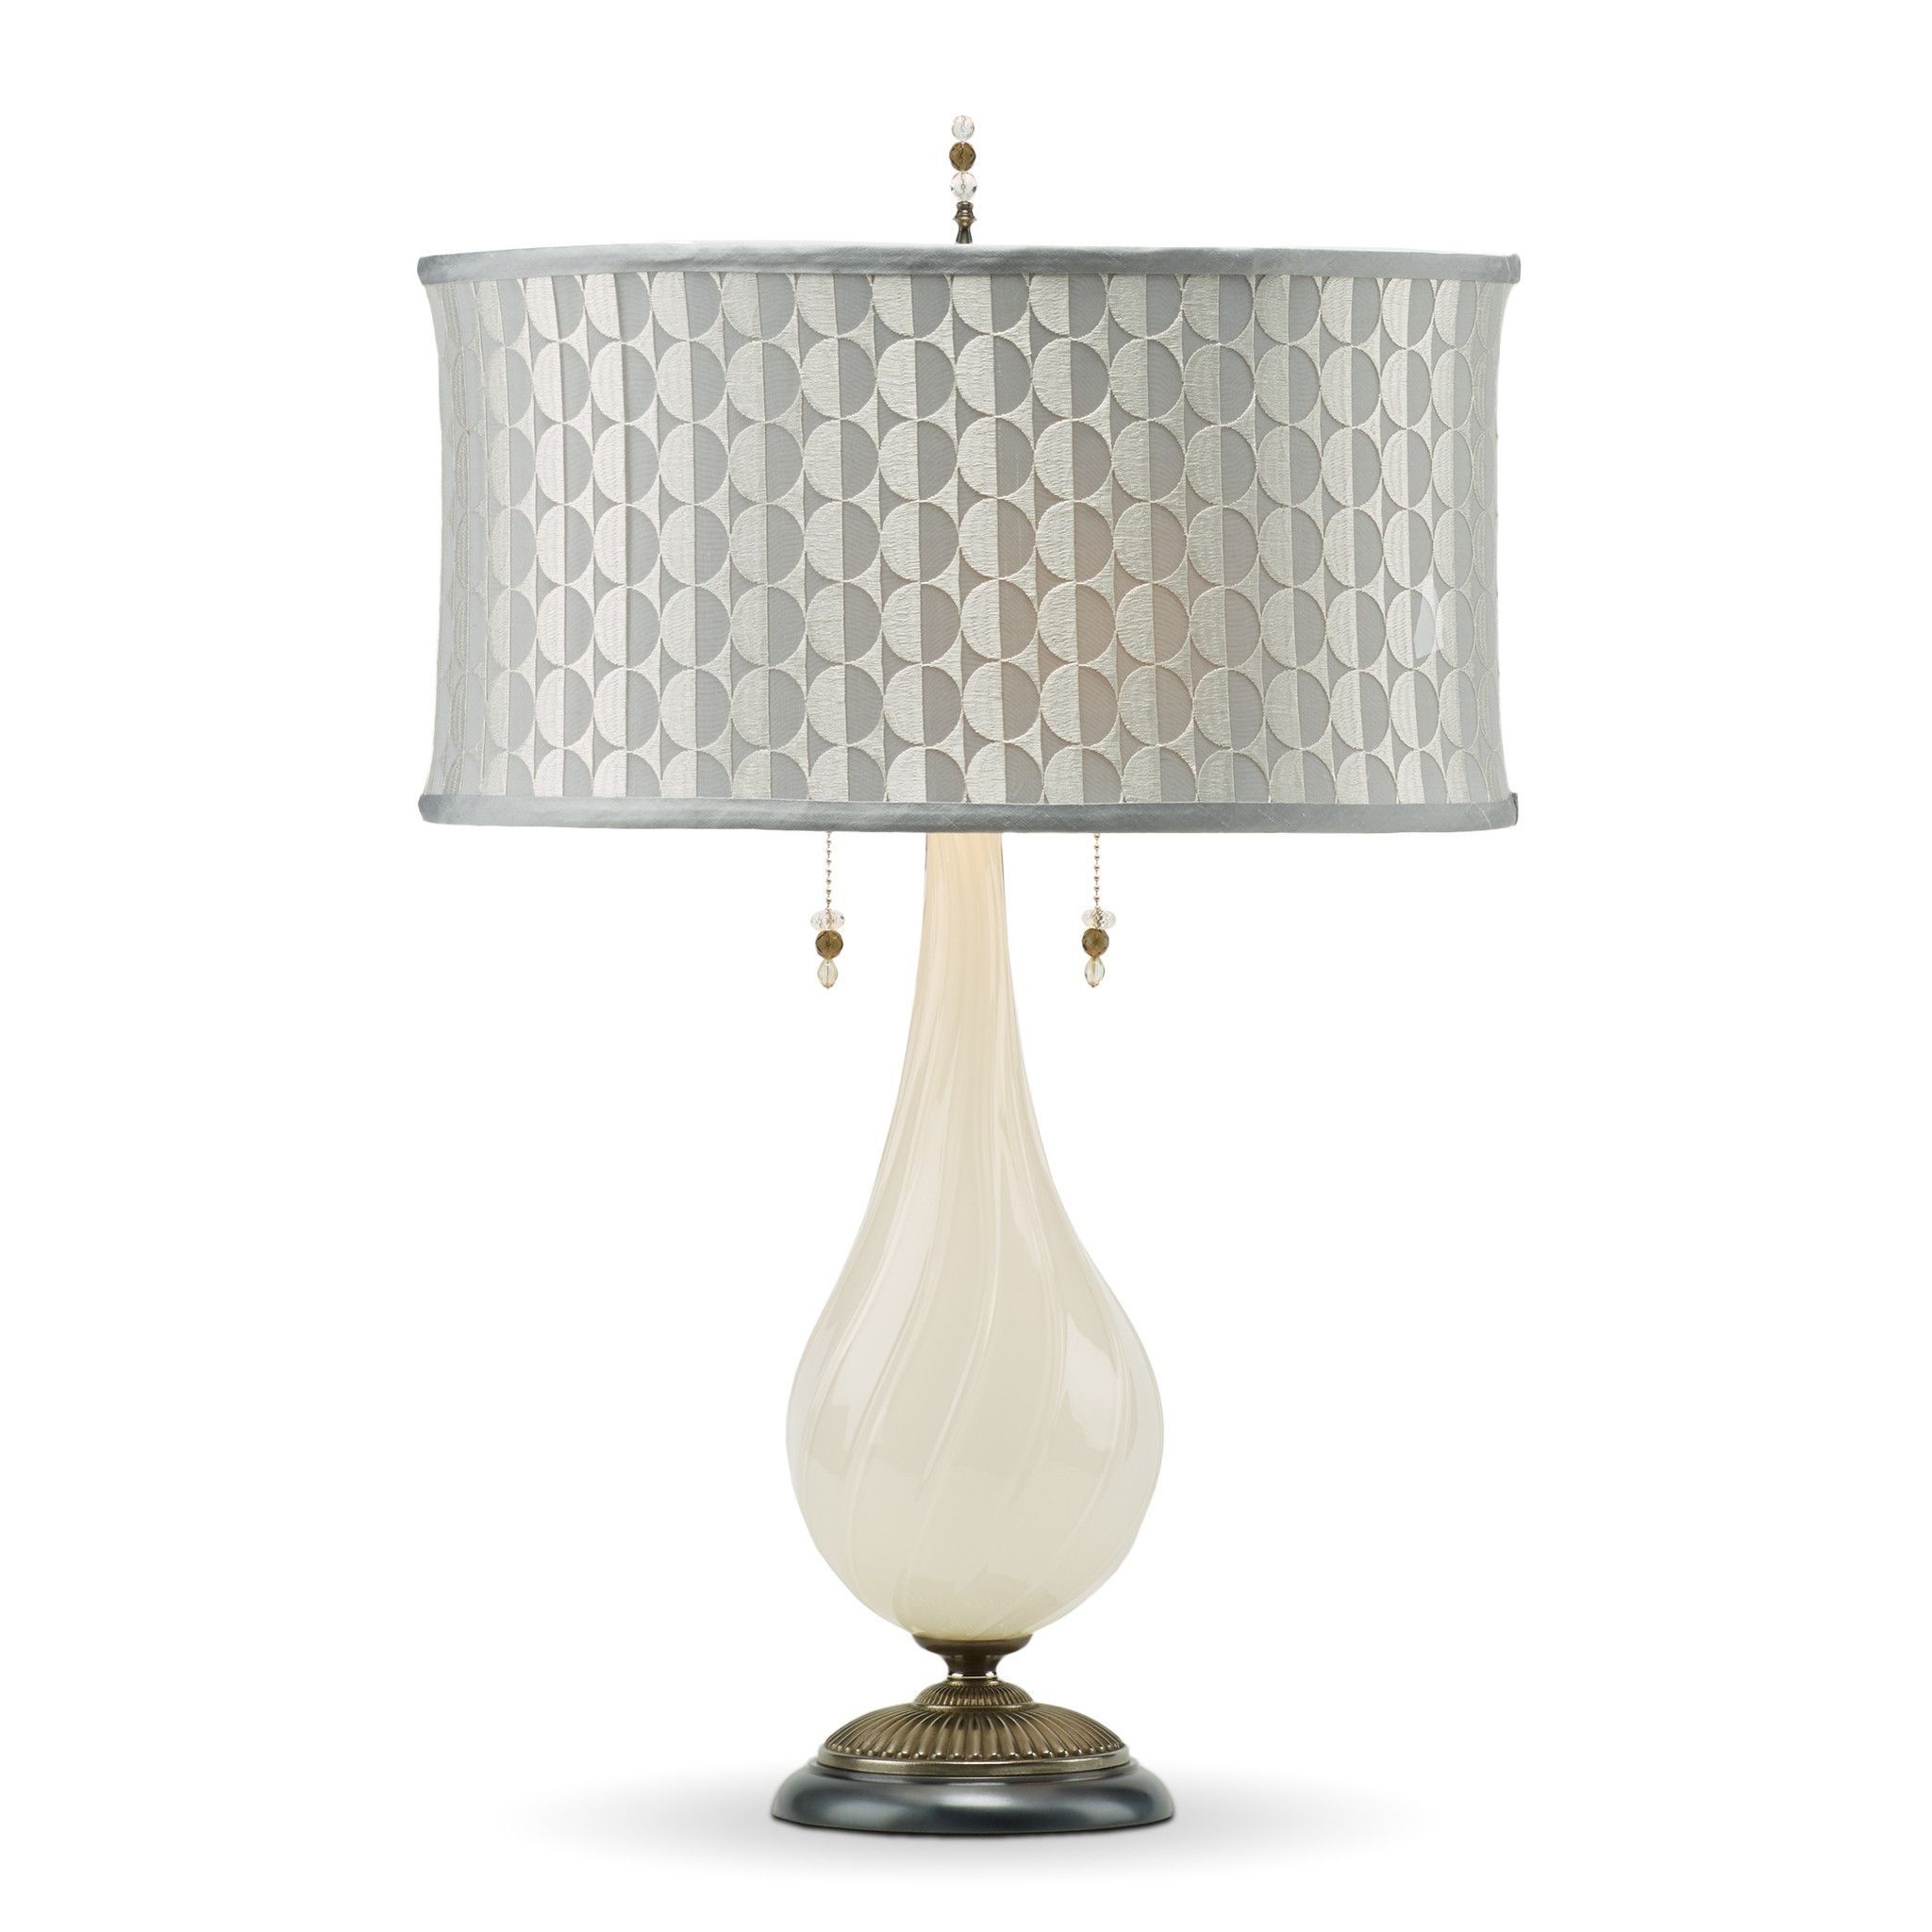 Gray Table Lamps Amusing Jules Table Lamp 135Af121Kinzig Design Colors White Silver And Design Inspiration